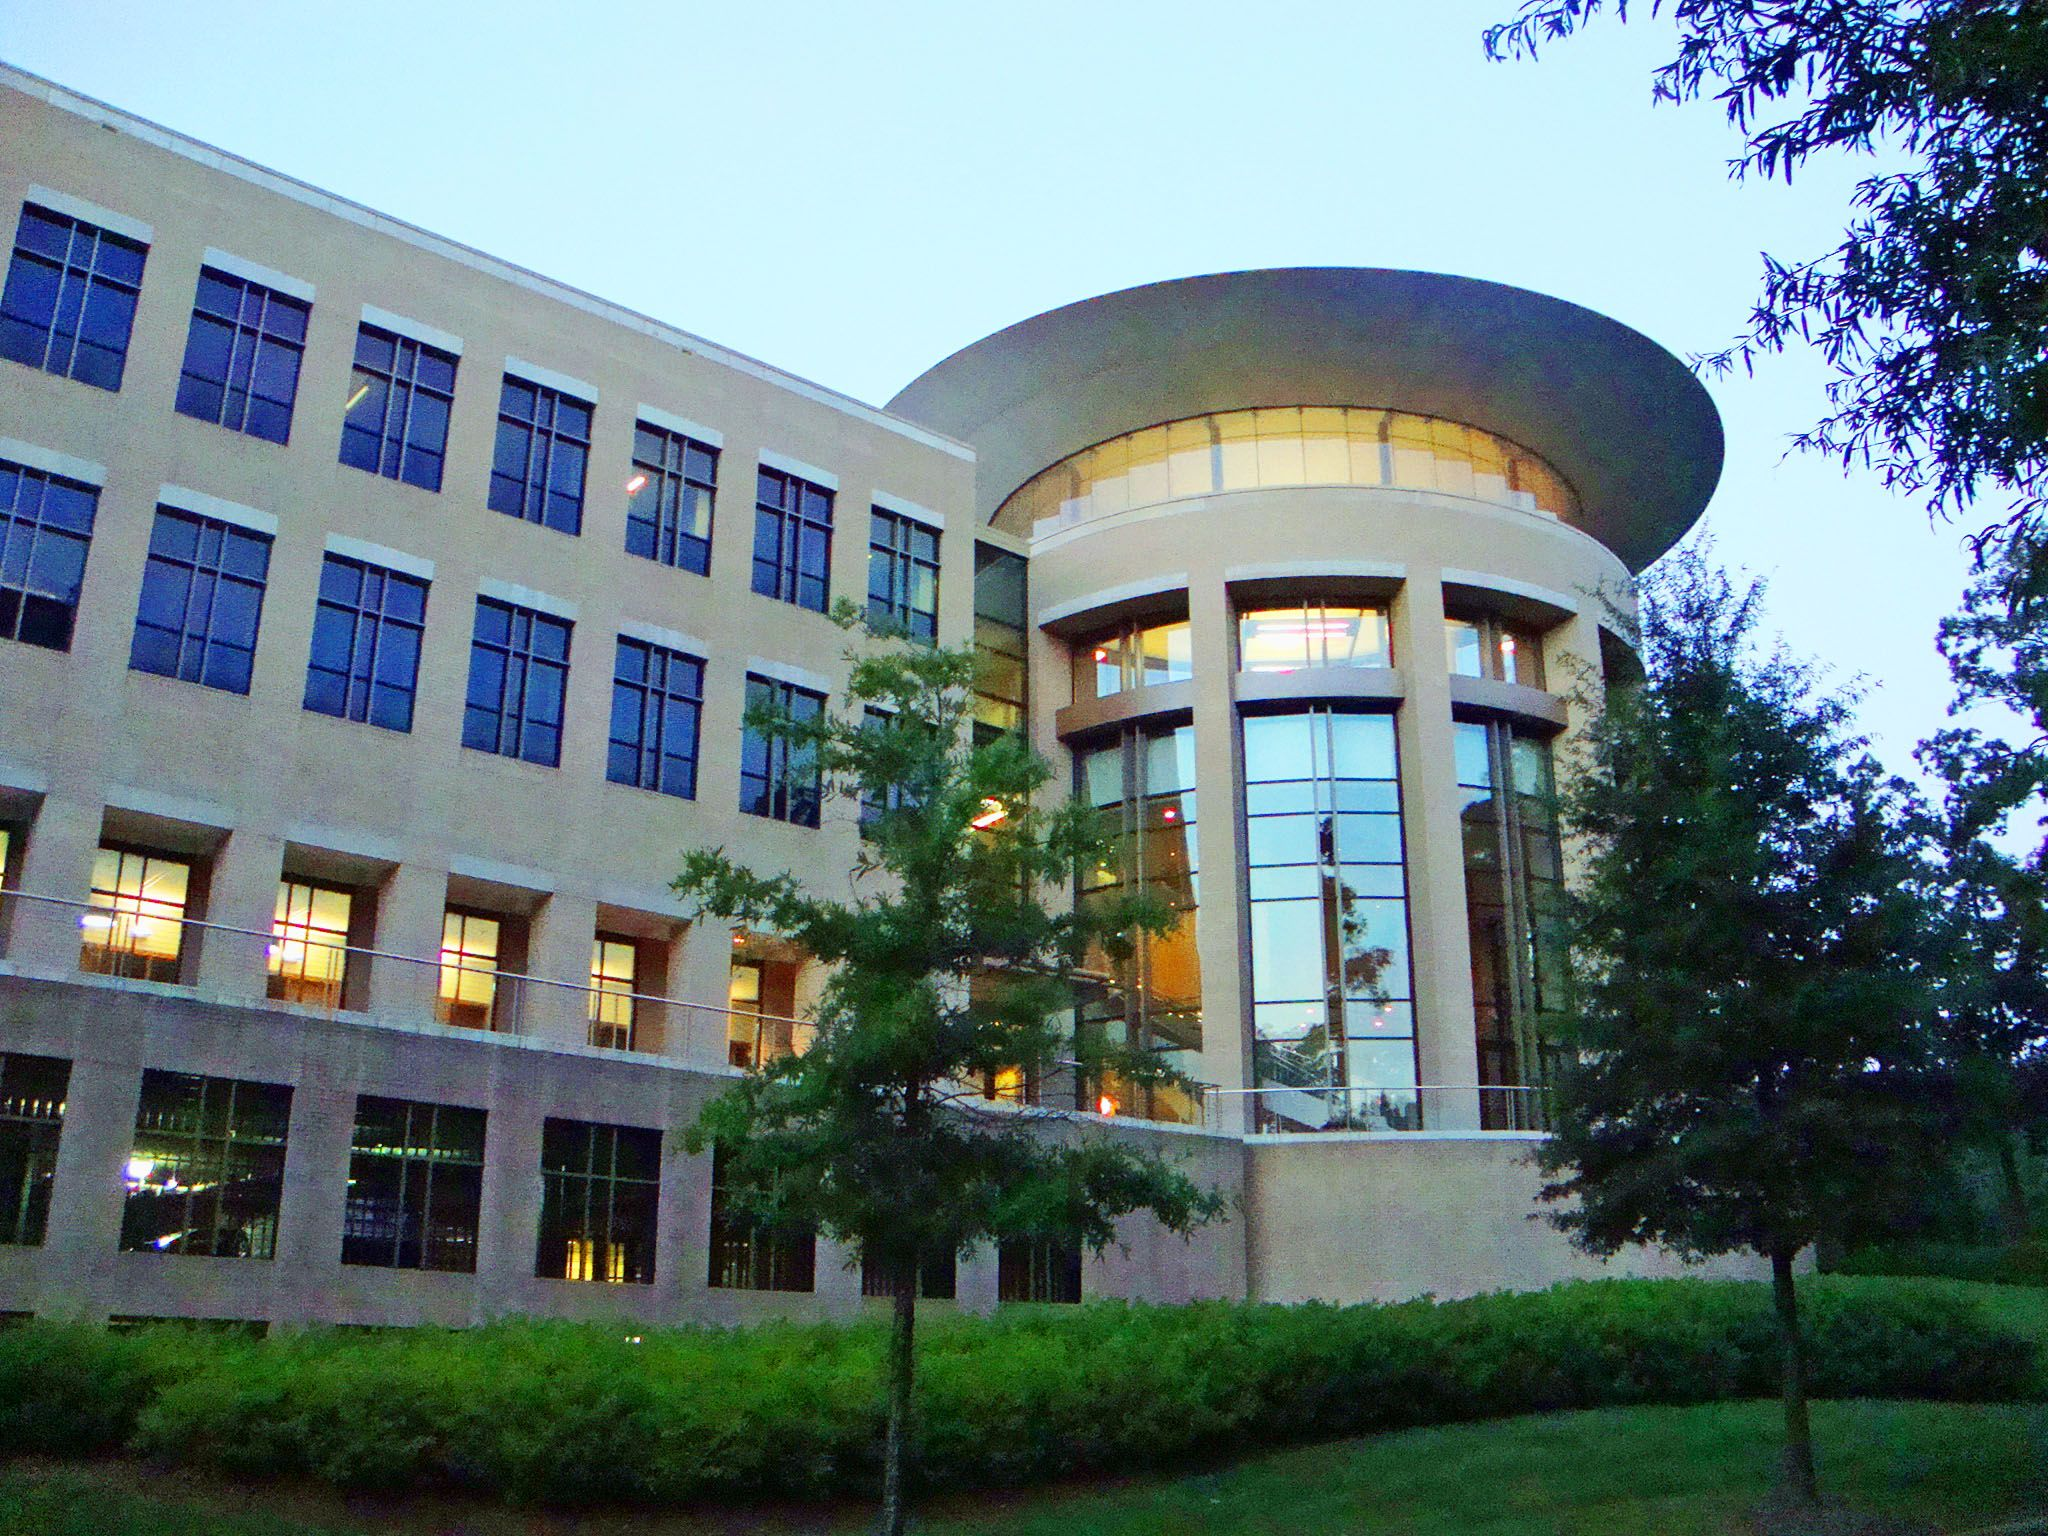 Greenville, SC Greenville, Medical school, House styles